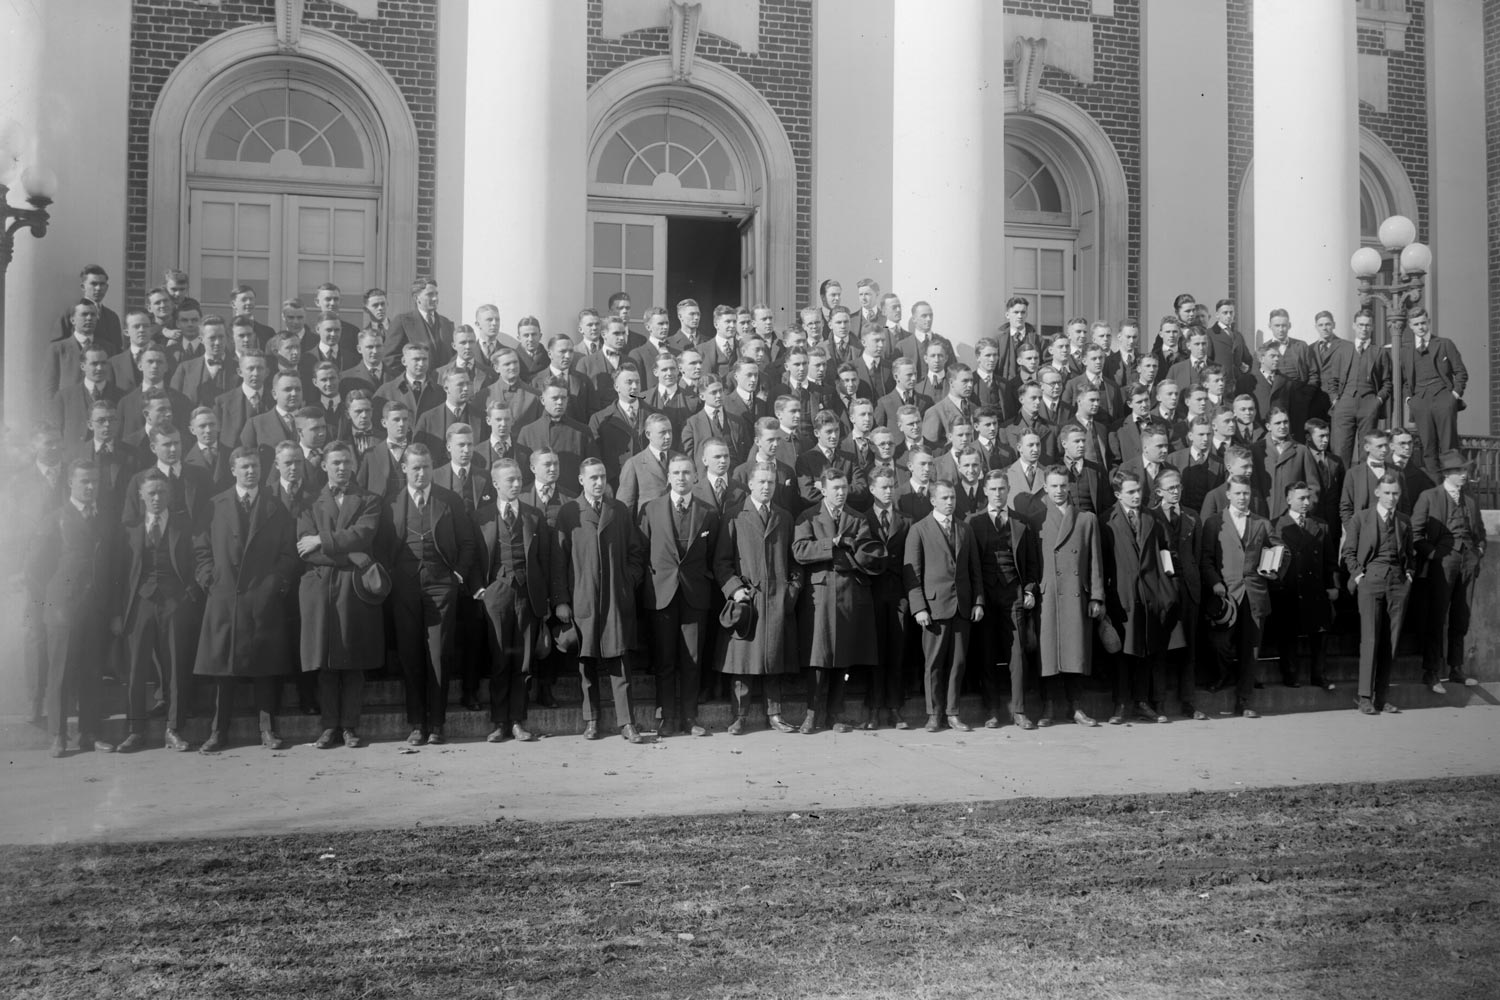 First- and second-year law students at the University of Virginia in 1916. (Photo by Rufus W. Holsinger, Holsinger Studio Collection at the UVA Albert and Shirley Small Special Collections Library)